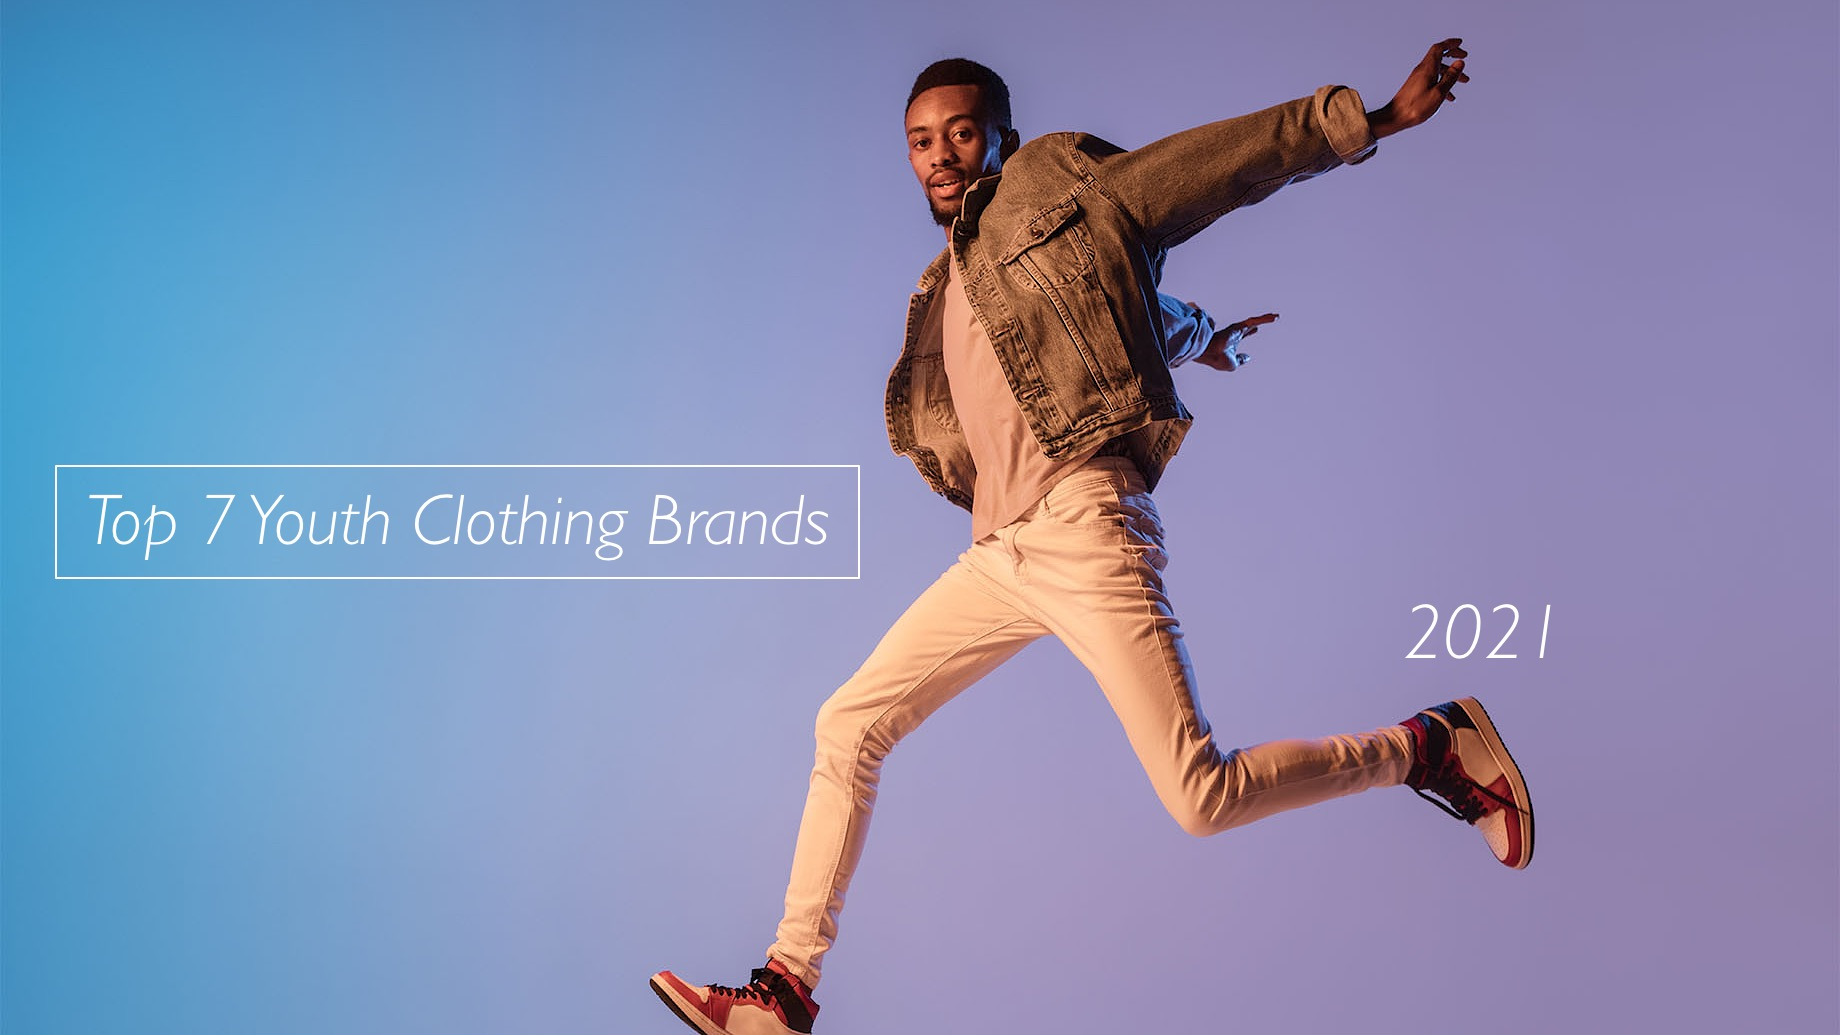 Top 7 Youth Clothing Brands In 2021